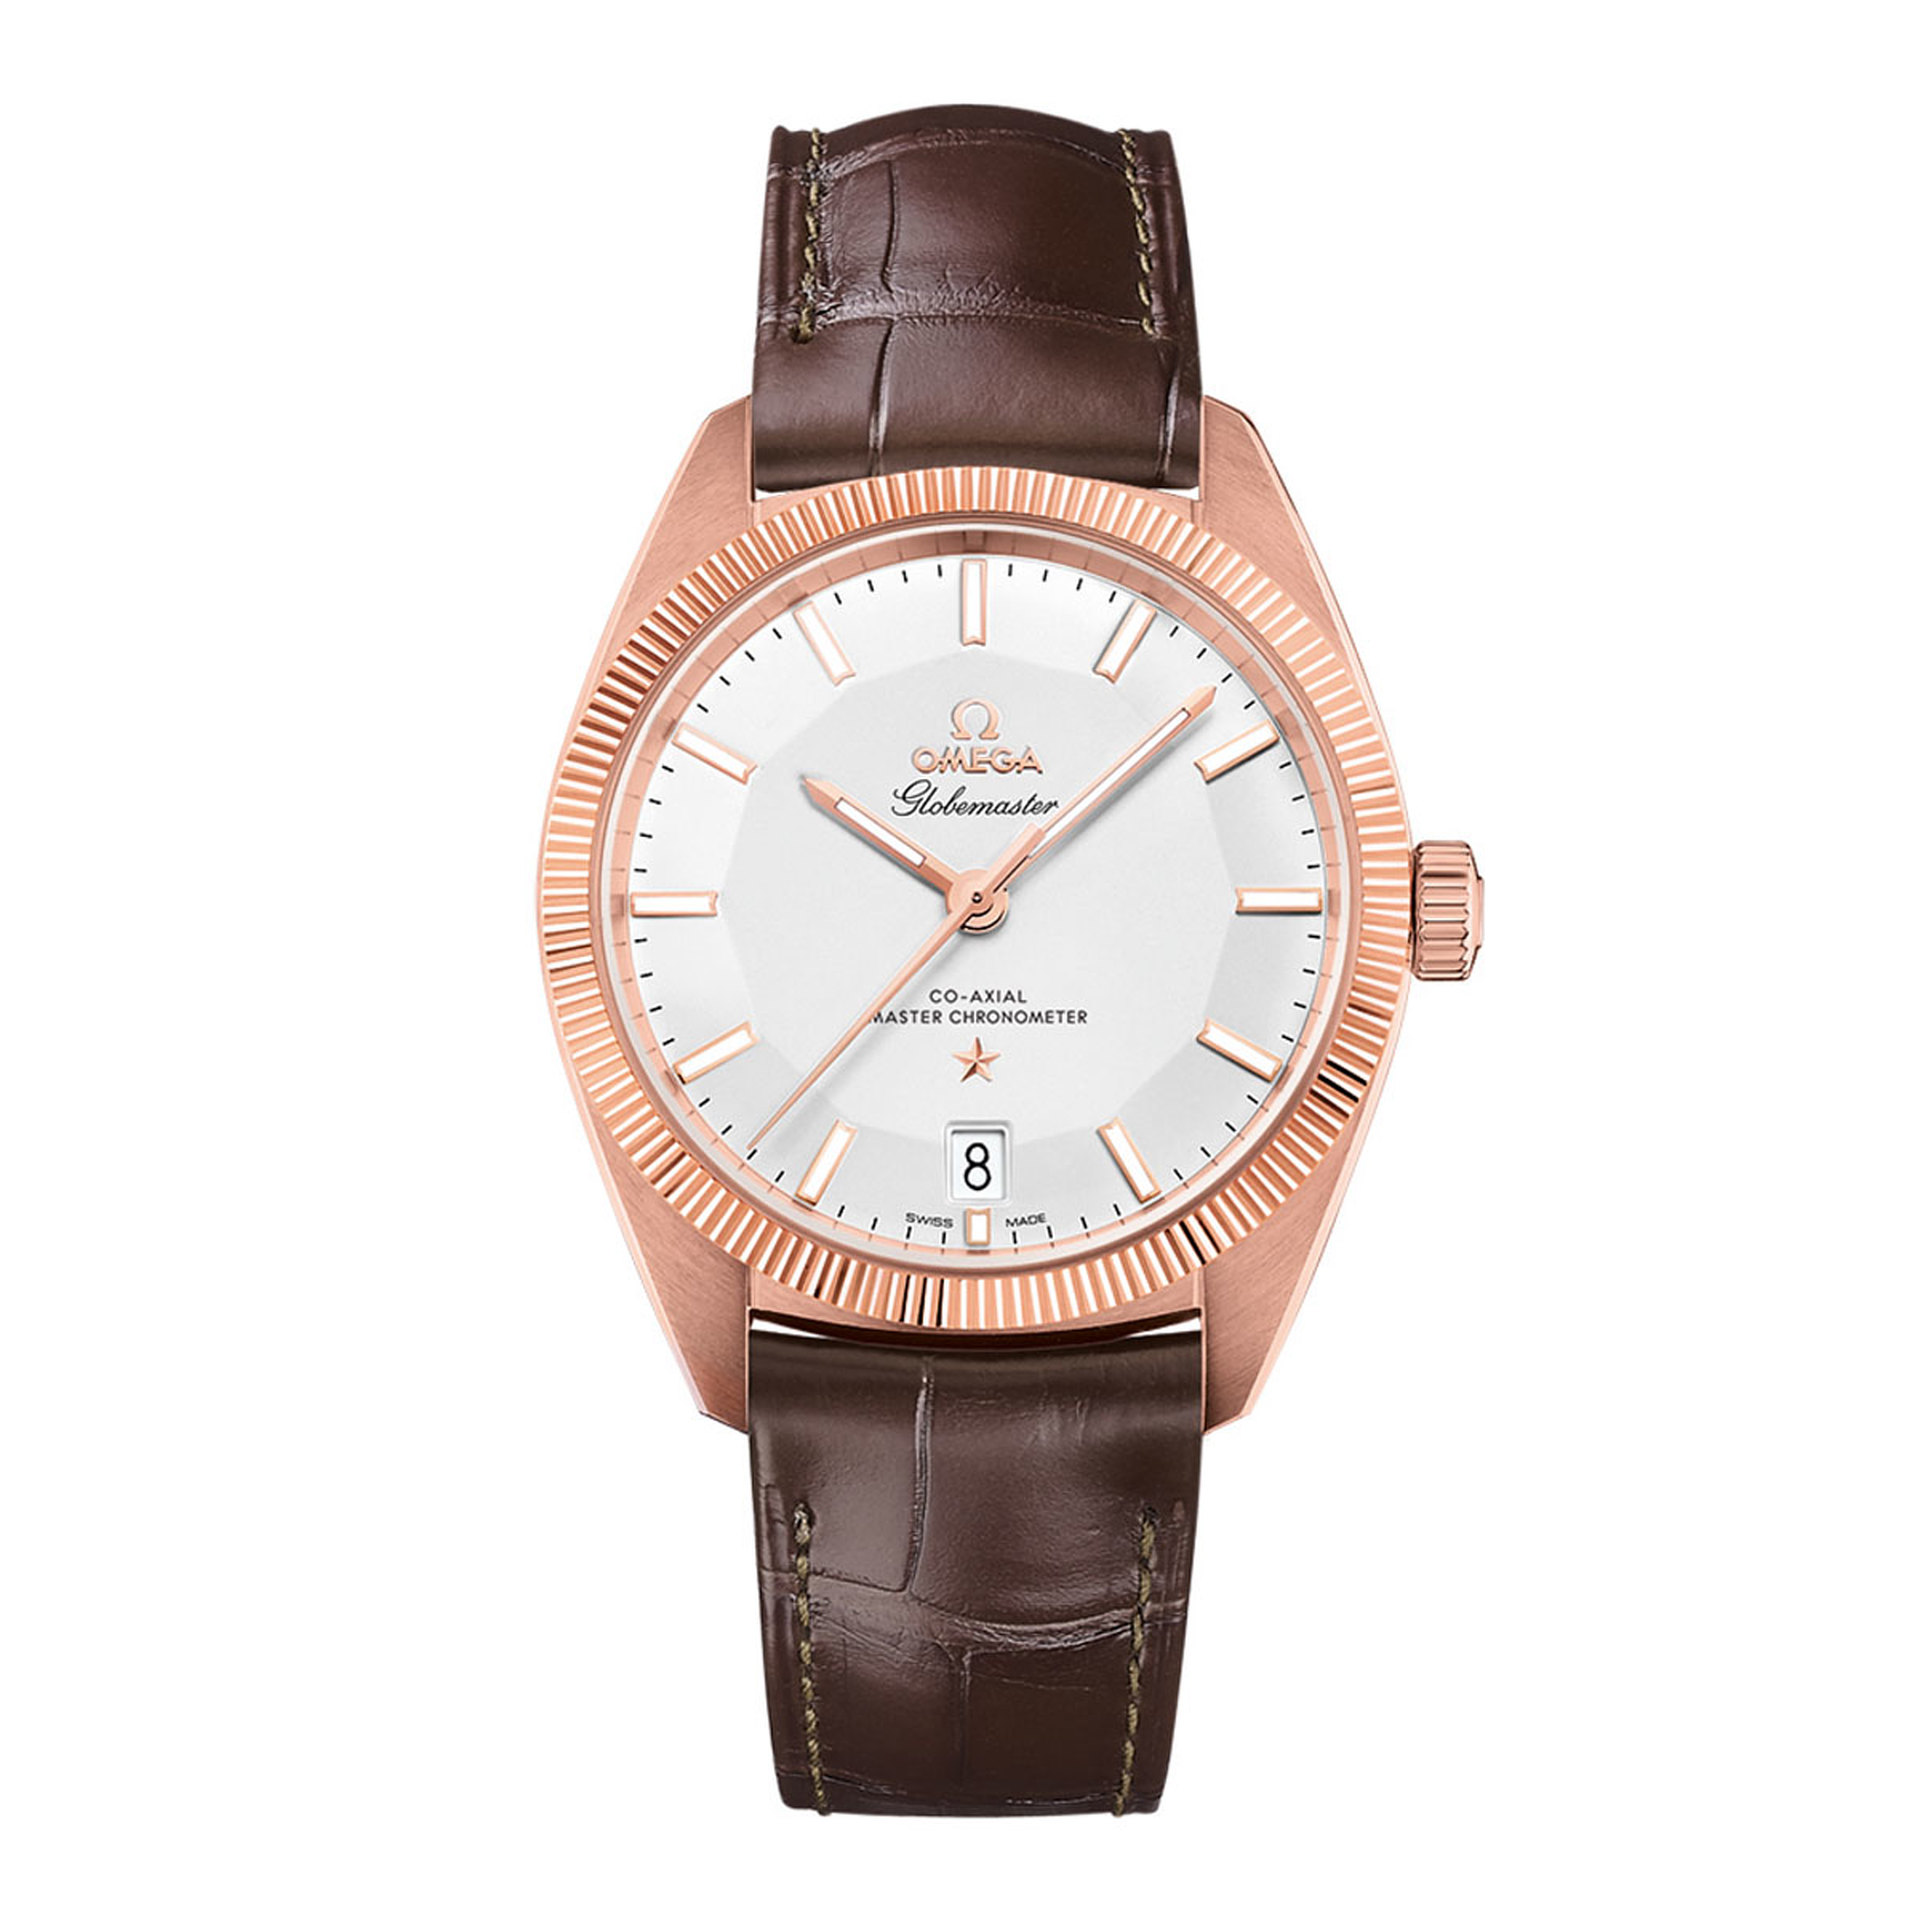 Gents OMEGA Constellation Globemaster Rose Gold Watch